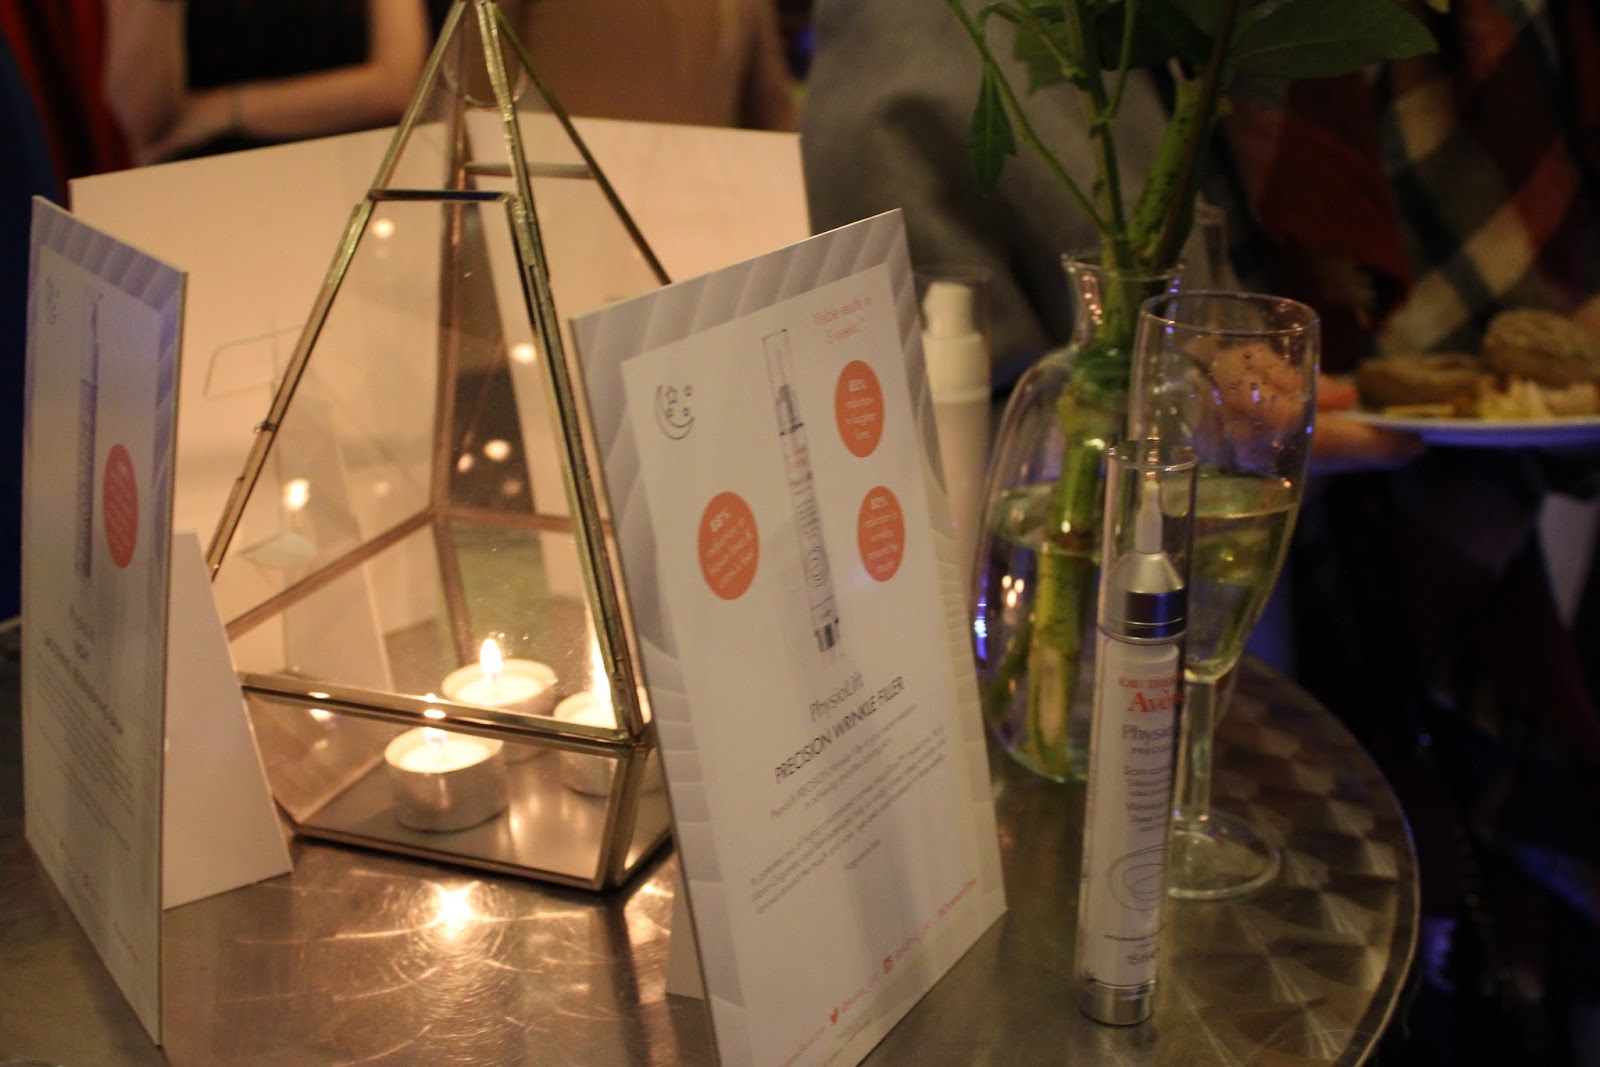 Avene 30 Plus Event - decor